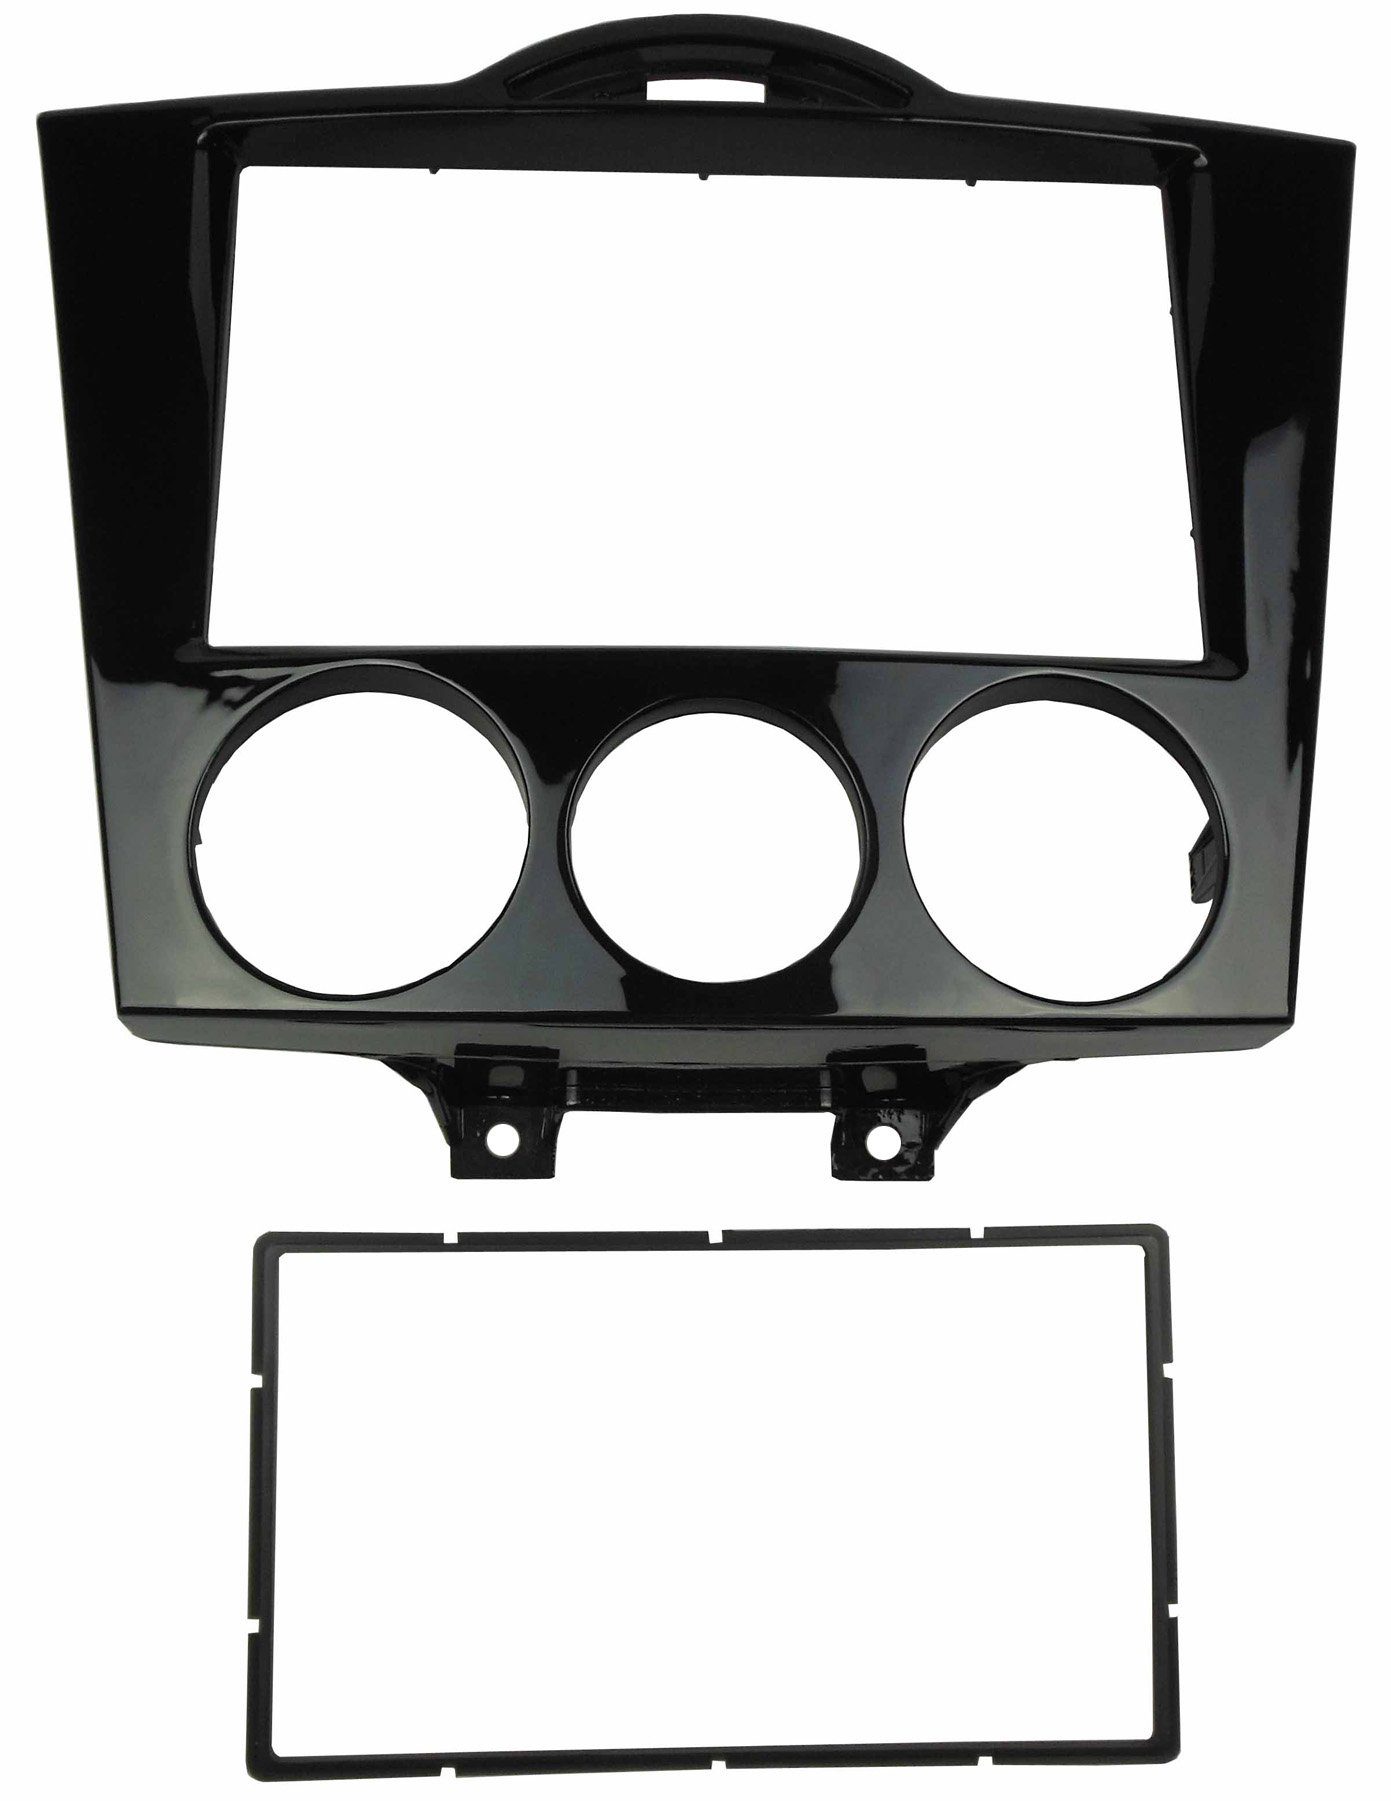 DKMUS Double Din Radio Stereo Dash Installation Mount Trim Kit for Mazda Rx-8 2004-2008 Fascia in Size 173*98mm or 178*102mm Gloss Black by DKMUS